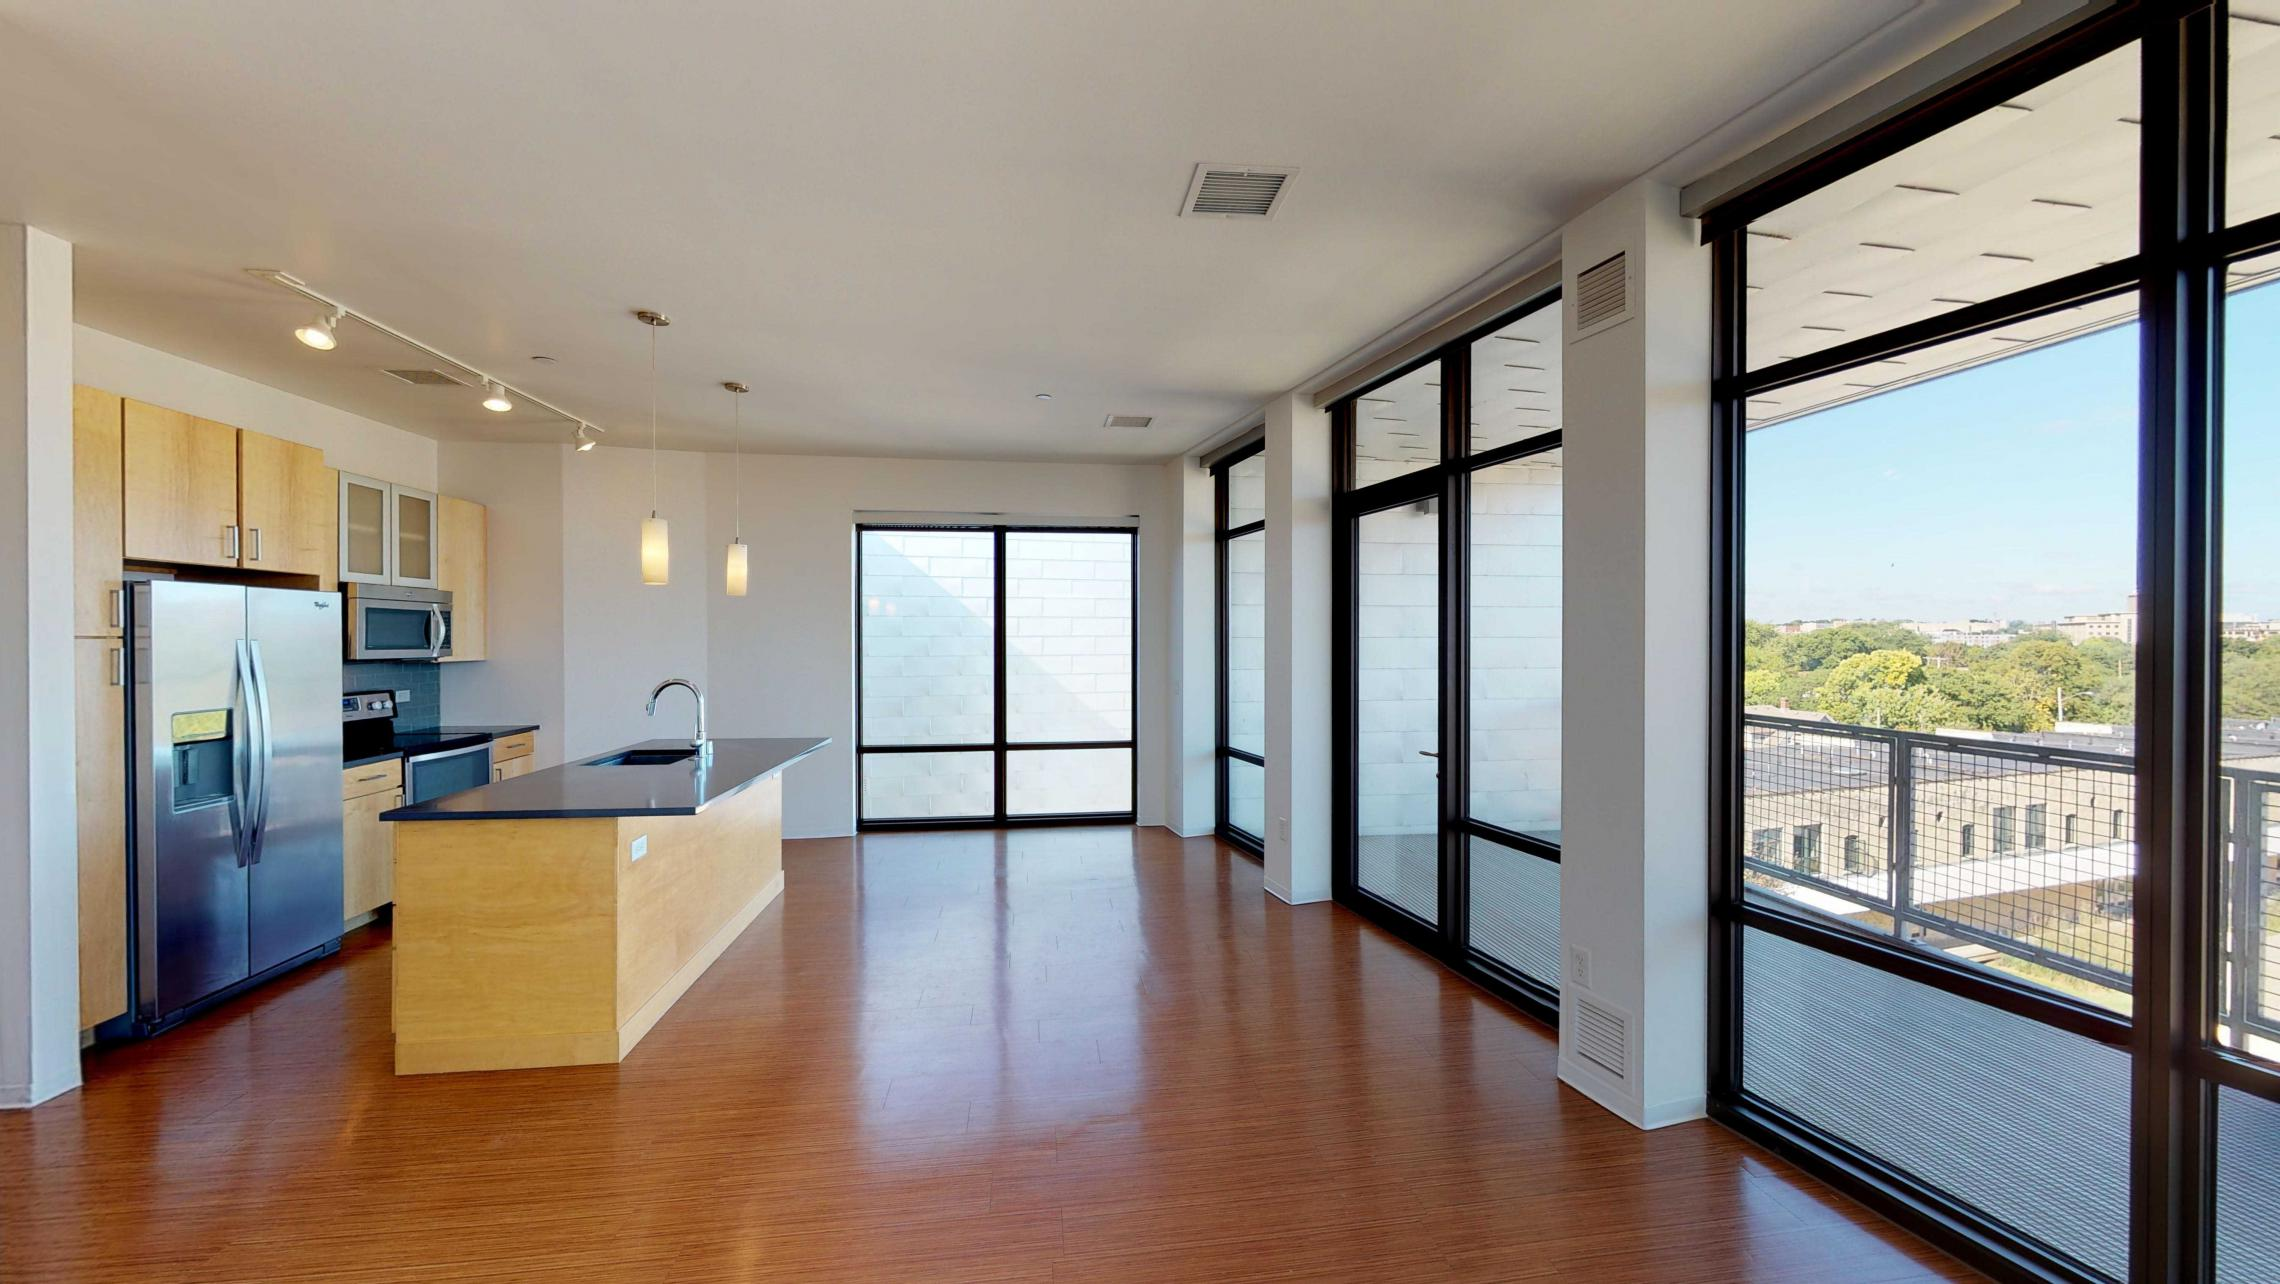 SEVEN27-Apartment-524-Two bedroom-Modern-Luxuy-Upscale-Capitol View-Lake View-Tp Floor-Balcony-Terrace-City View.jpg